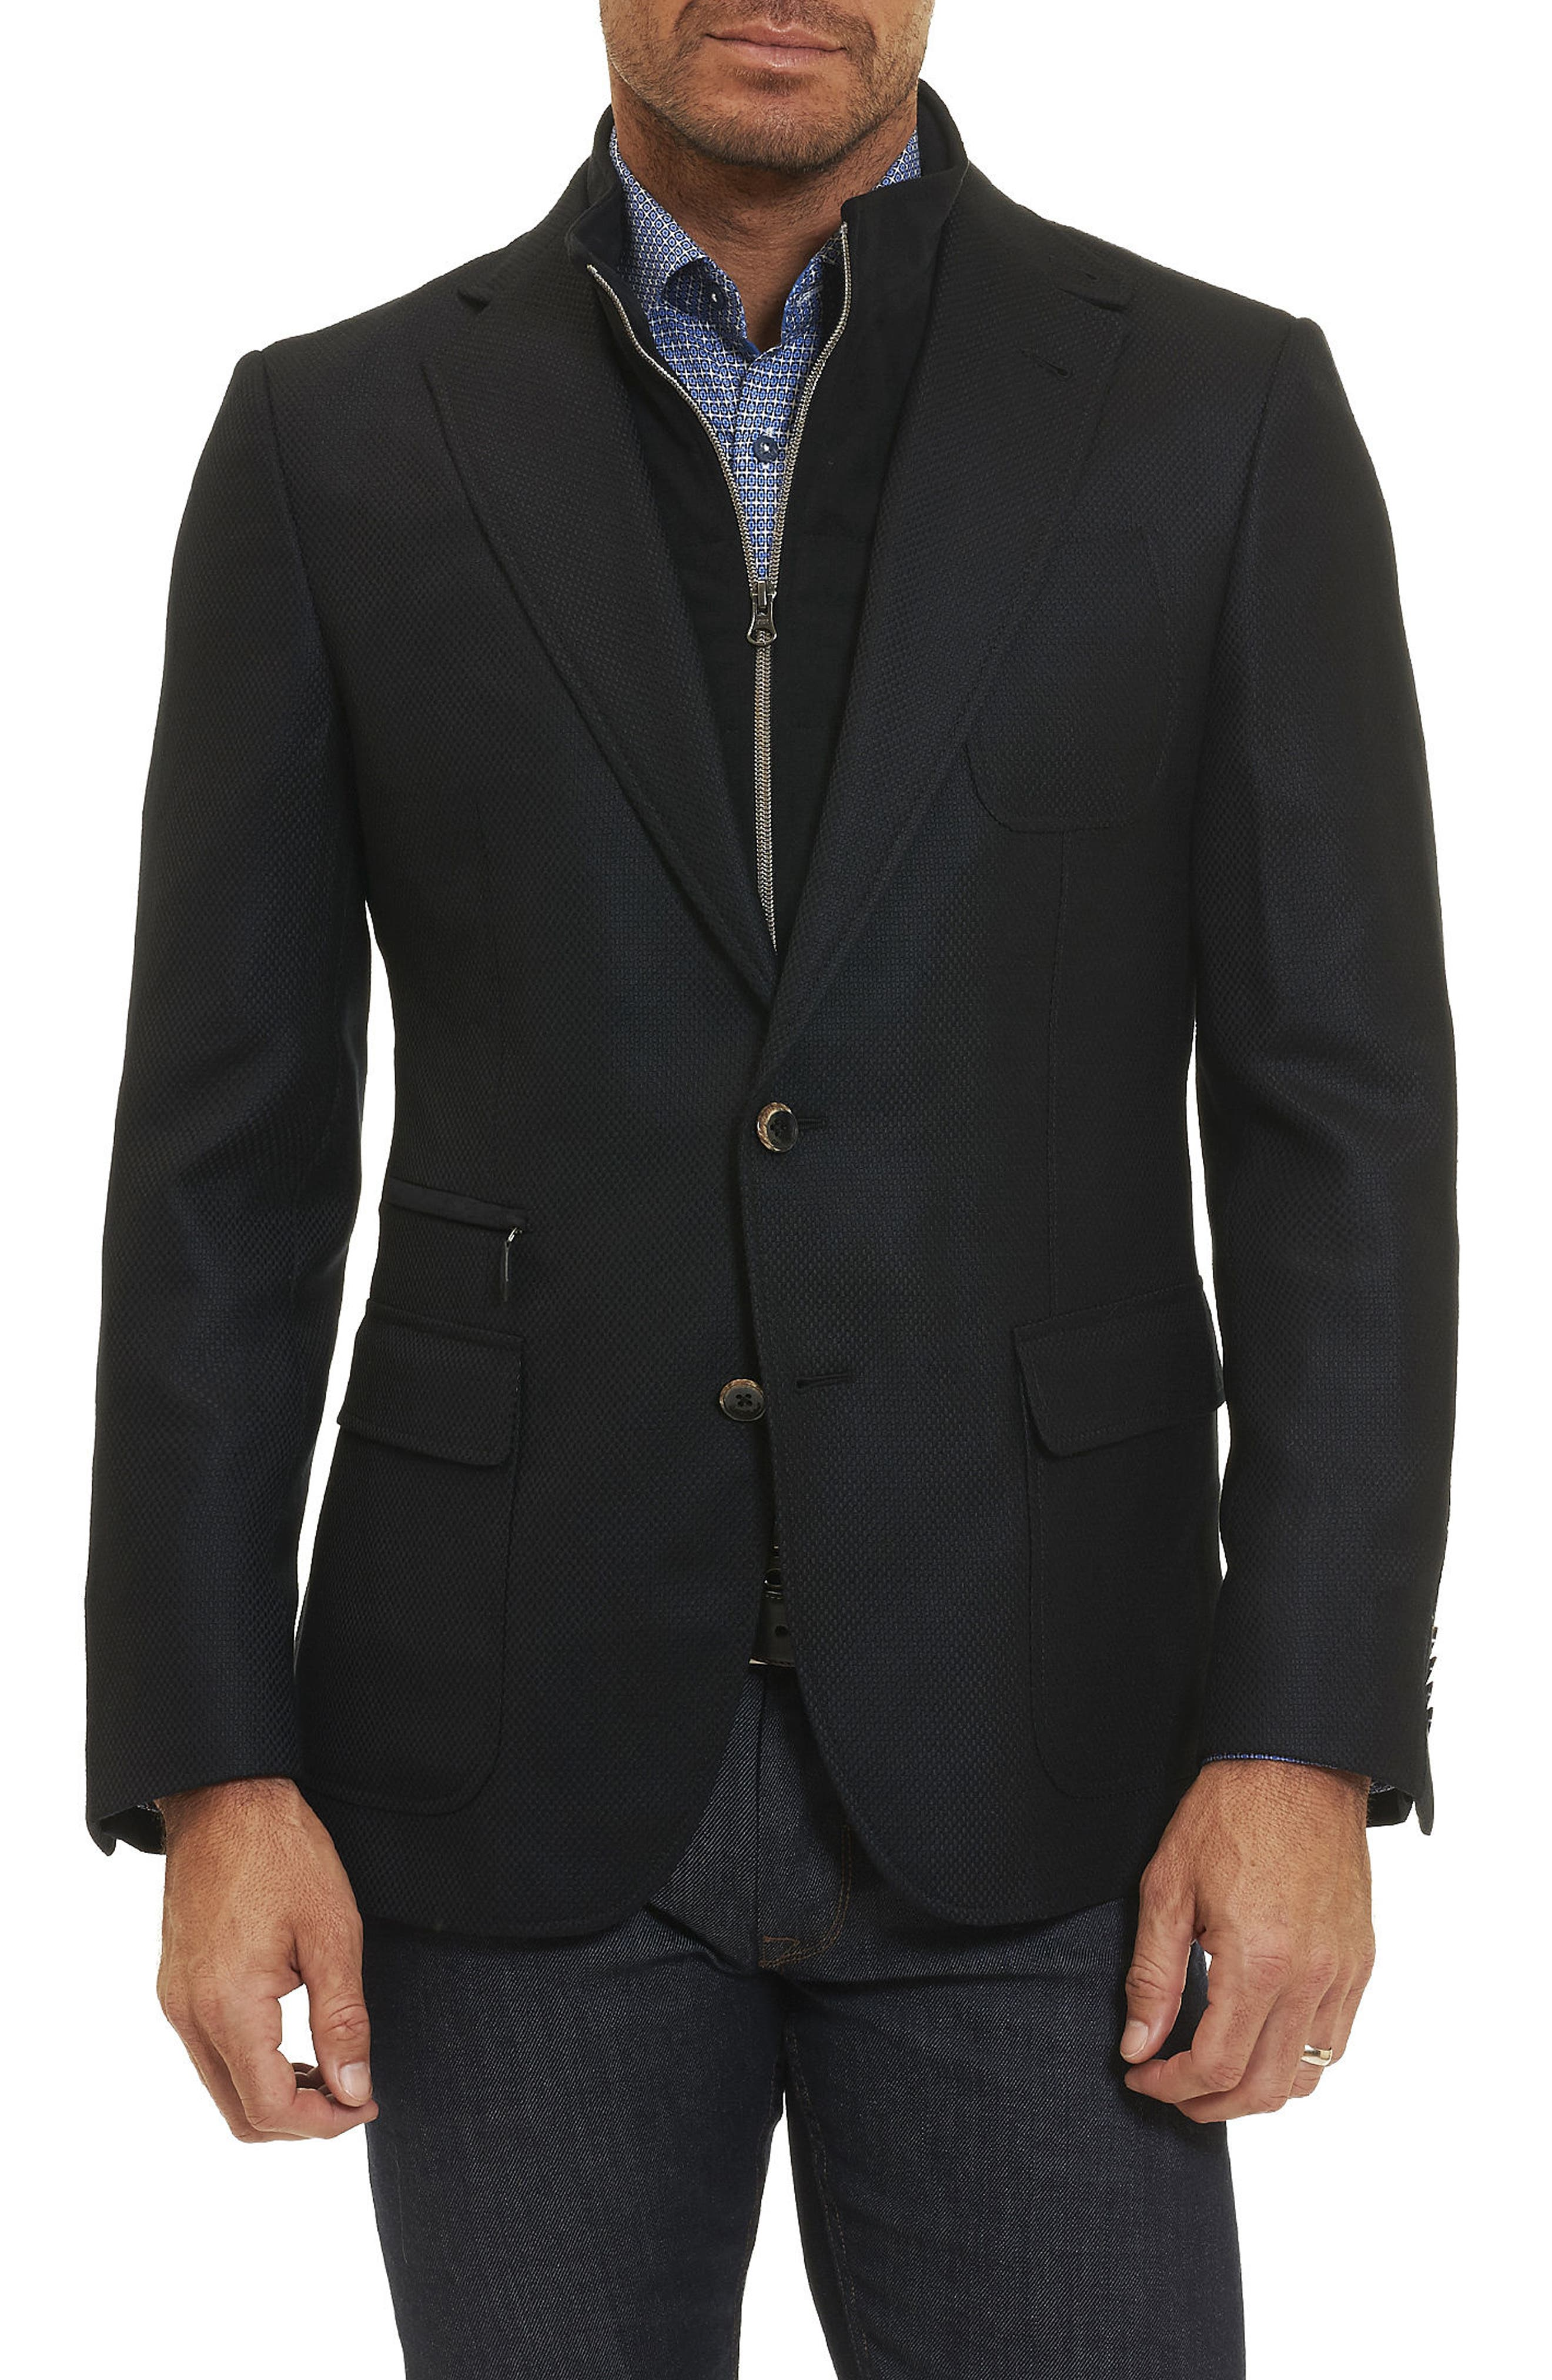 Downhill Sport Coat with Removable Bib,                             Main thumbnail 1, color,